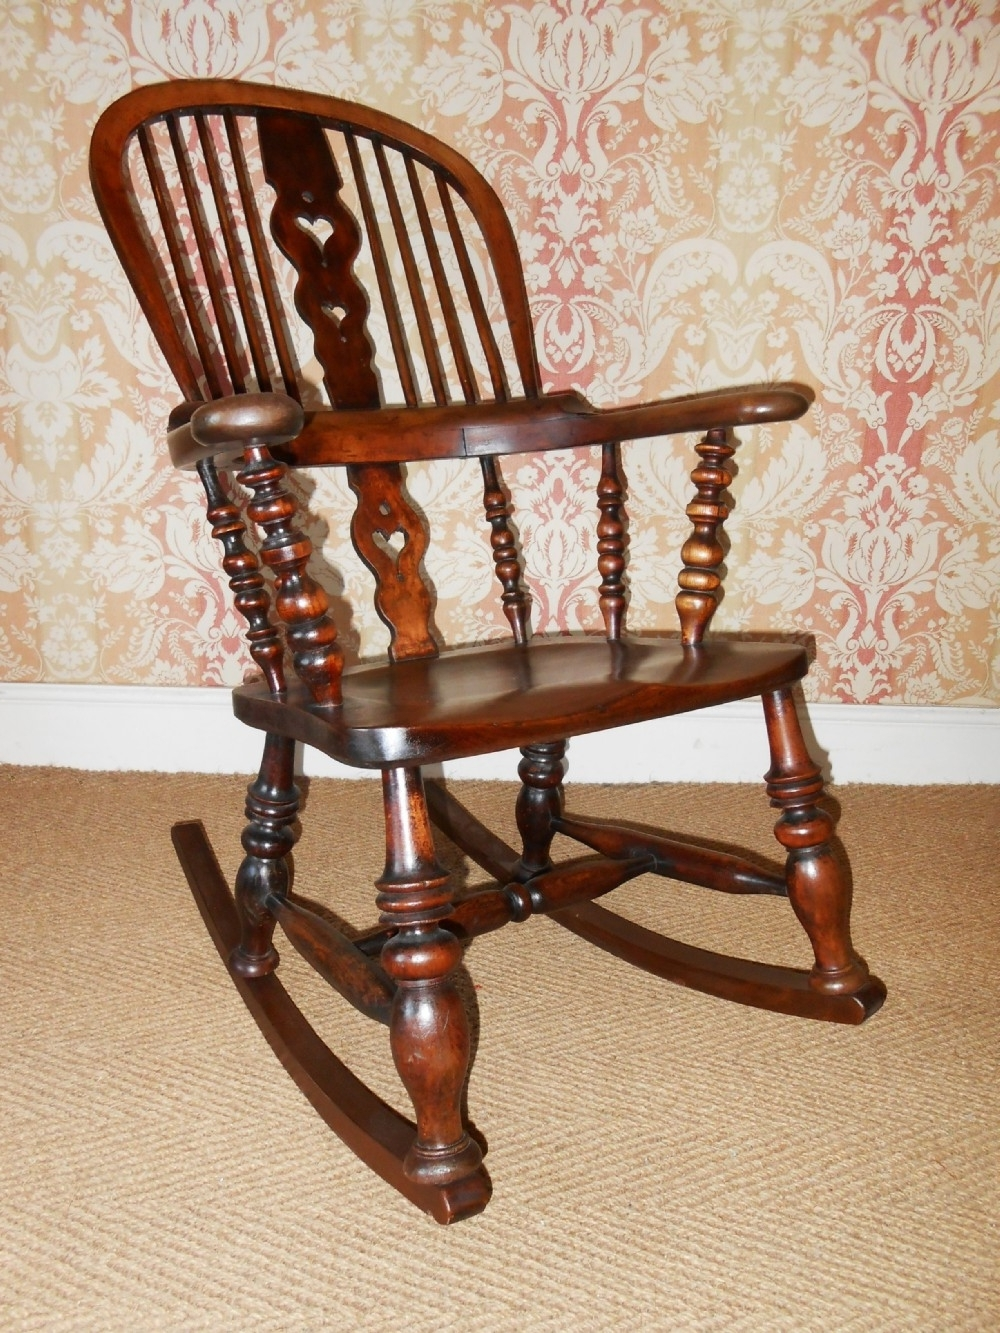 Sellingantiques With Regard To Most Current Victorian Rocking Chairs (View 7 of 15)